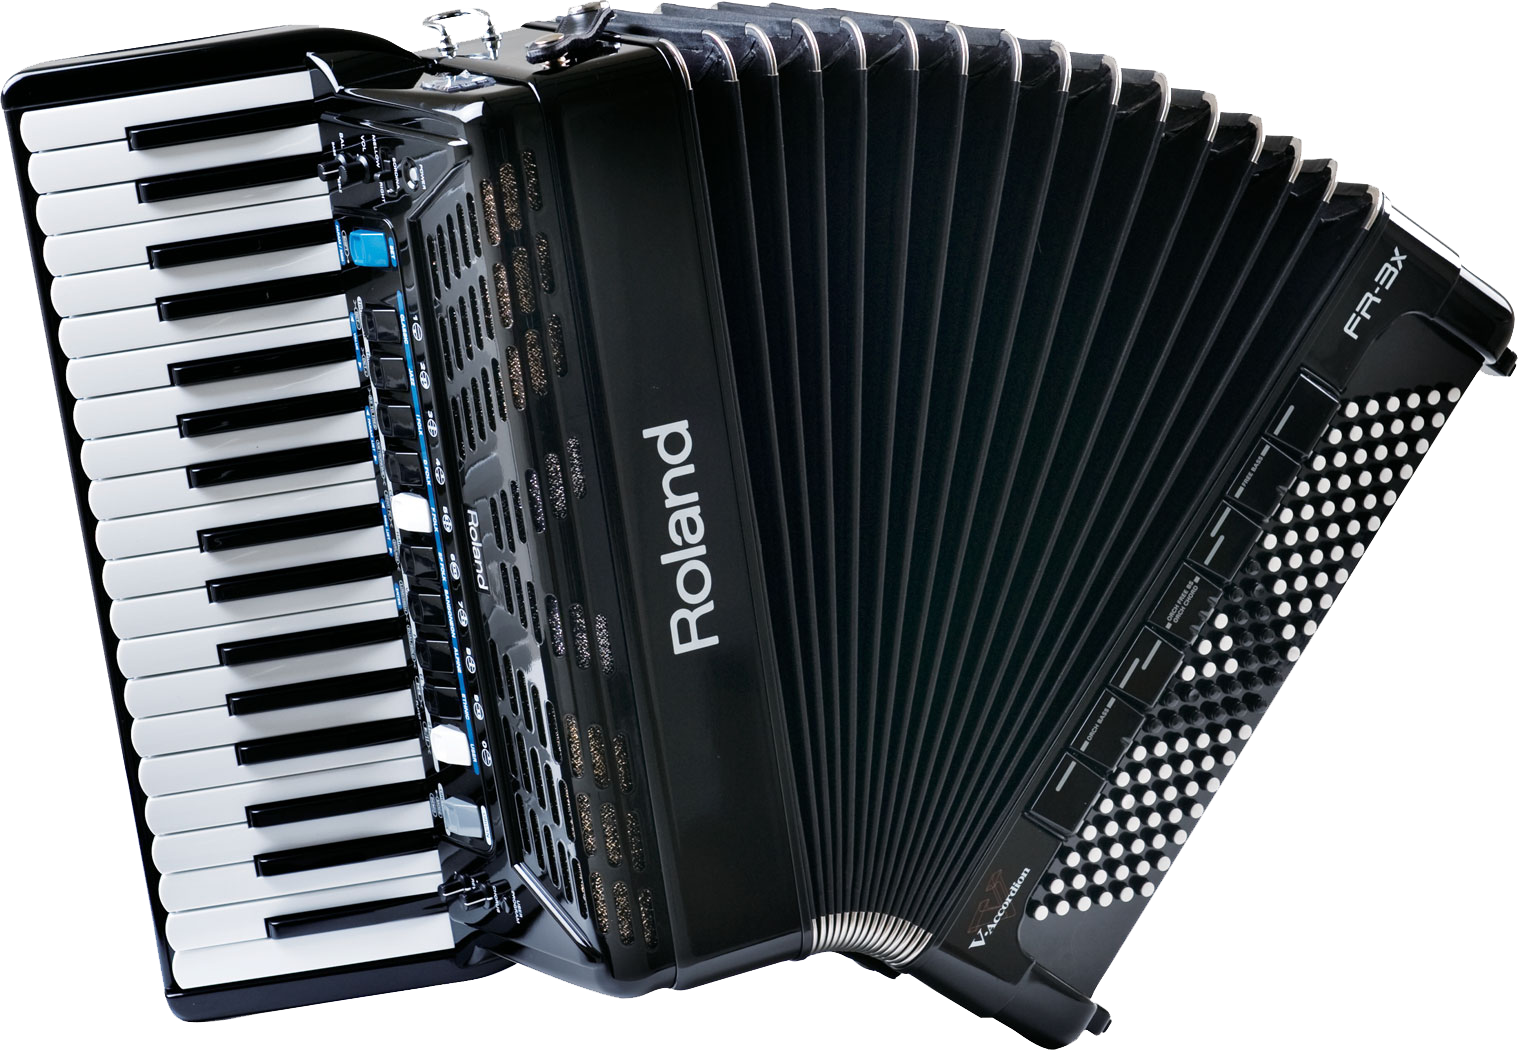 Accordion PNG - 1172